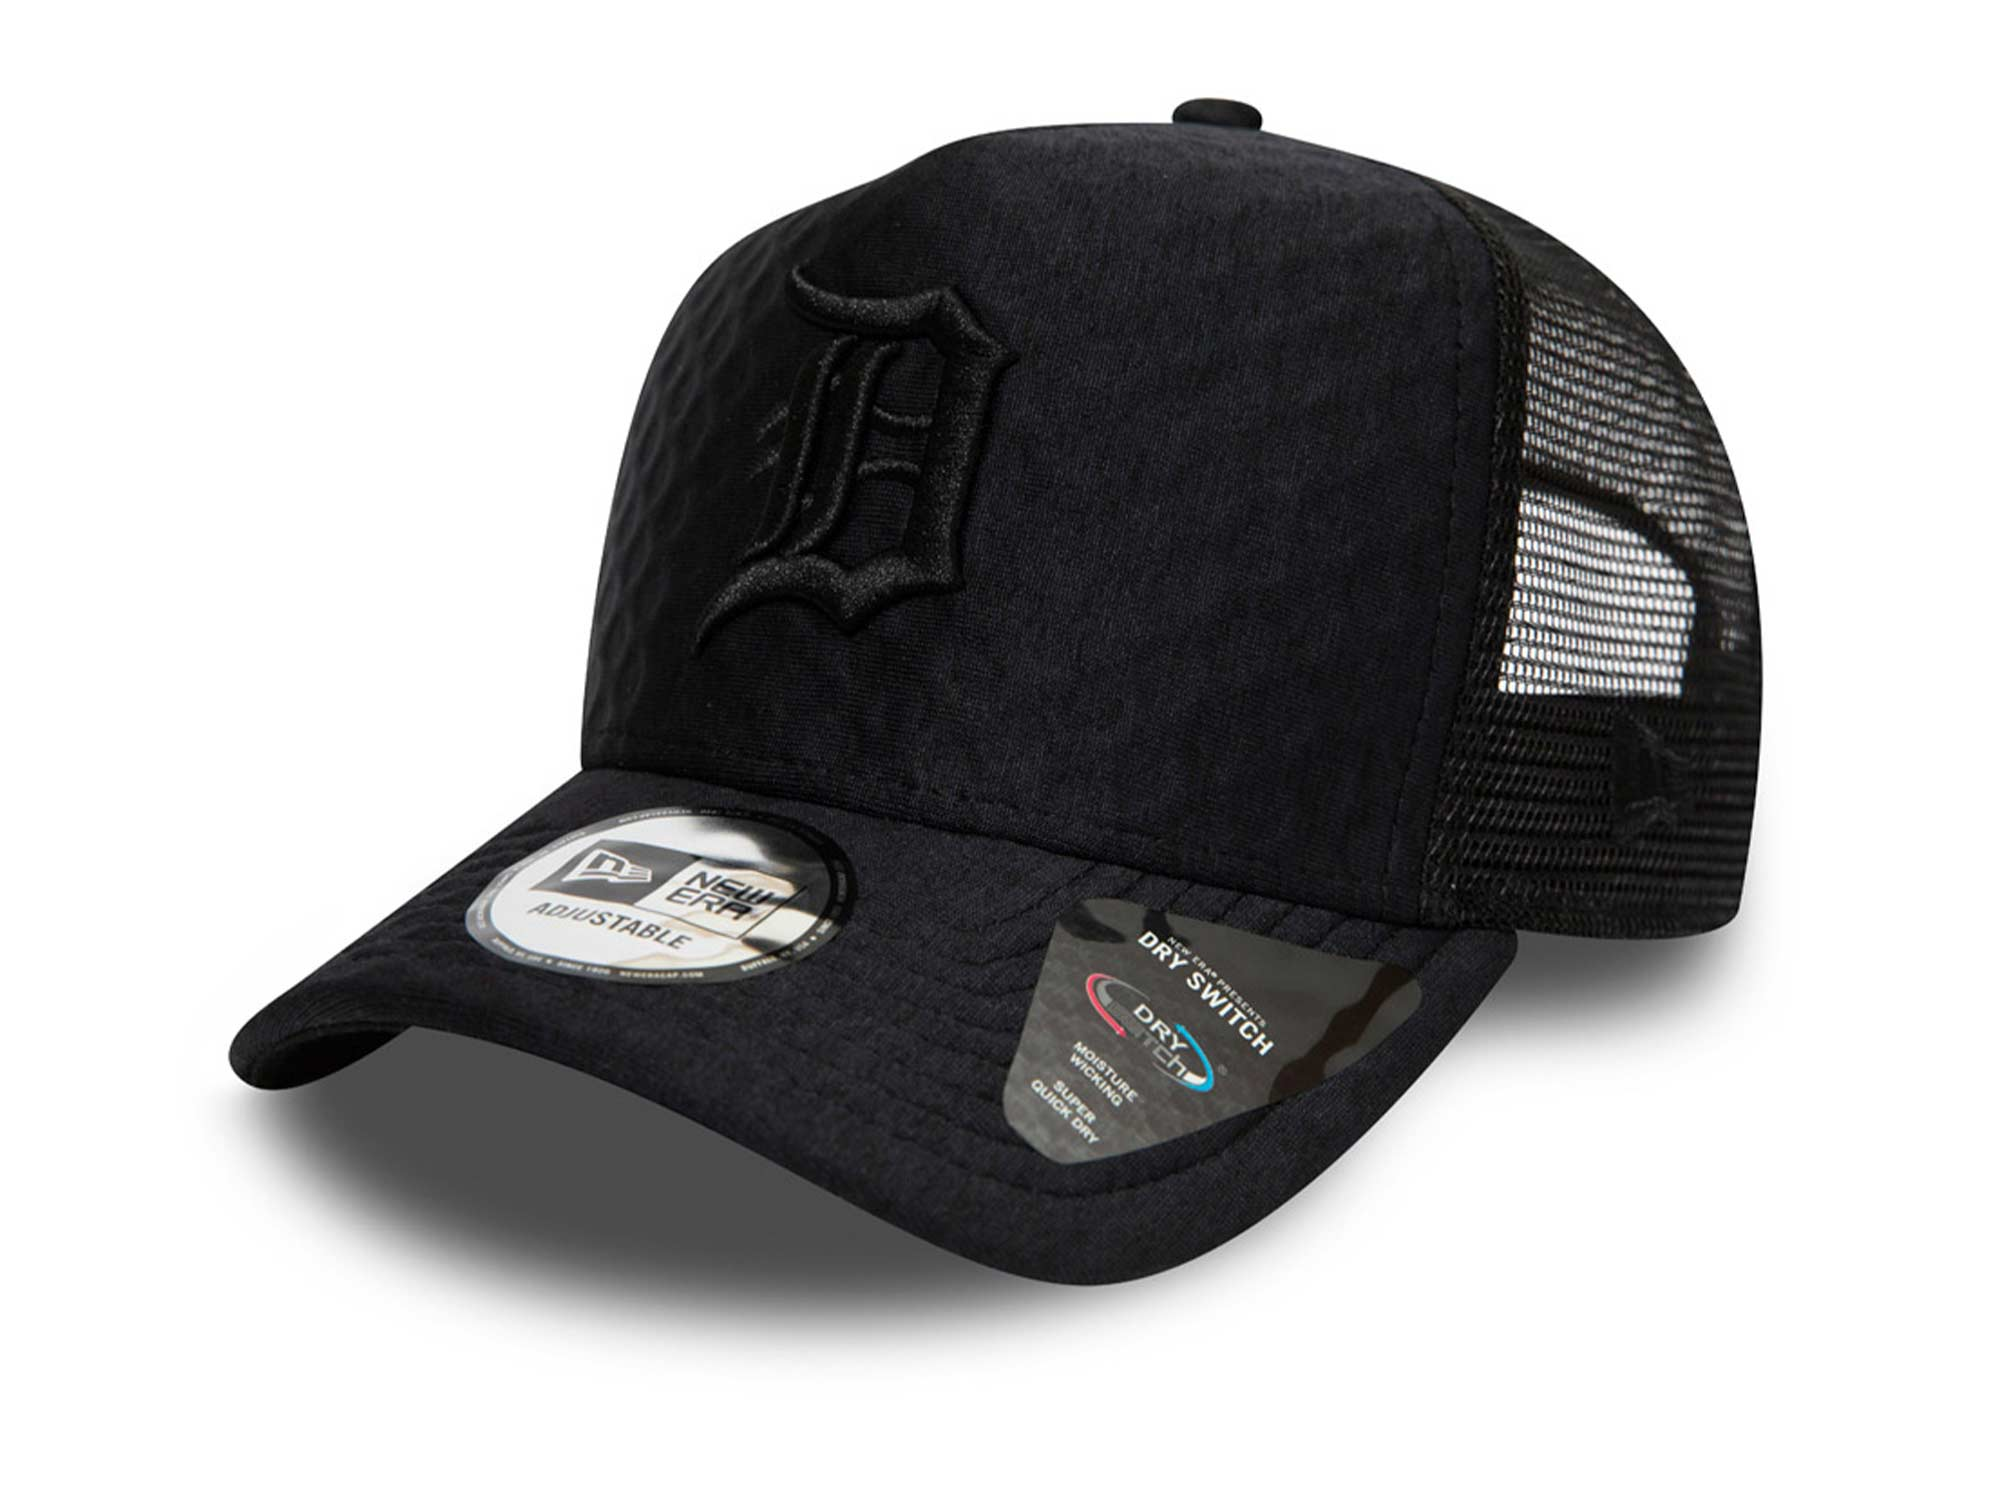 #26 Jockey New Era Detroit Tigers Hombre Negro